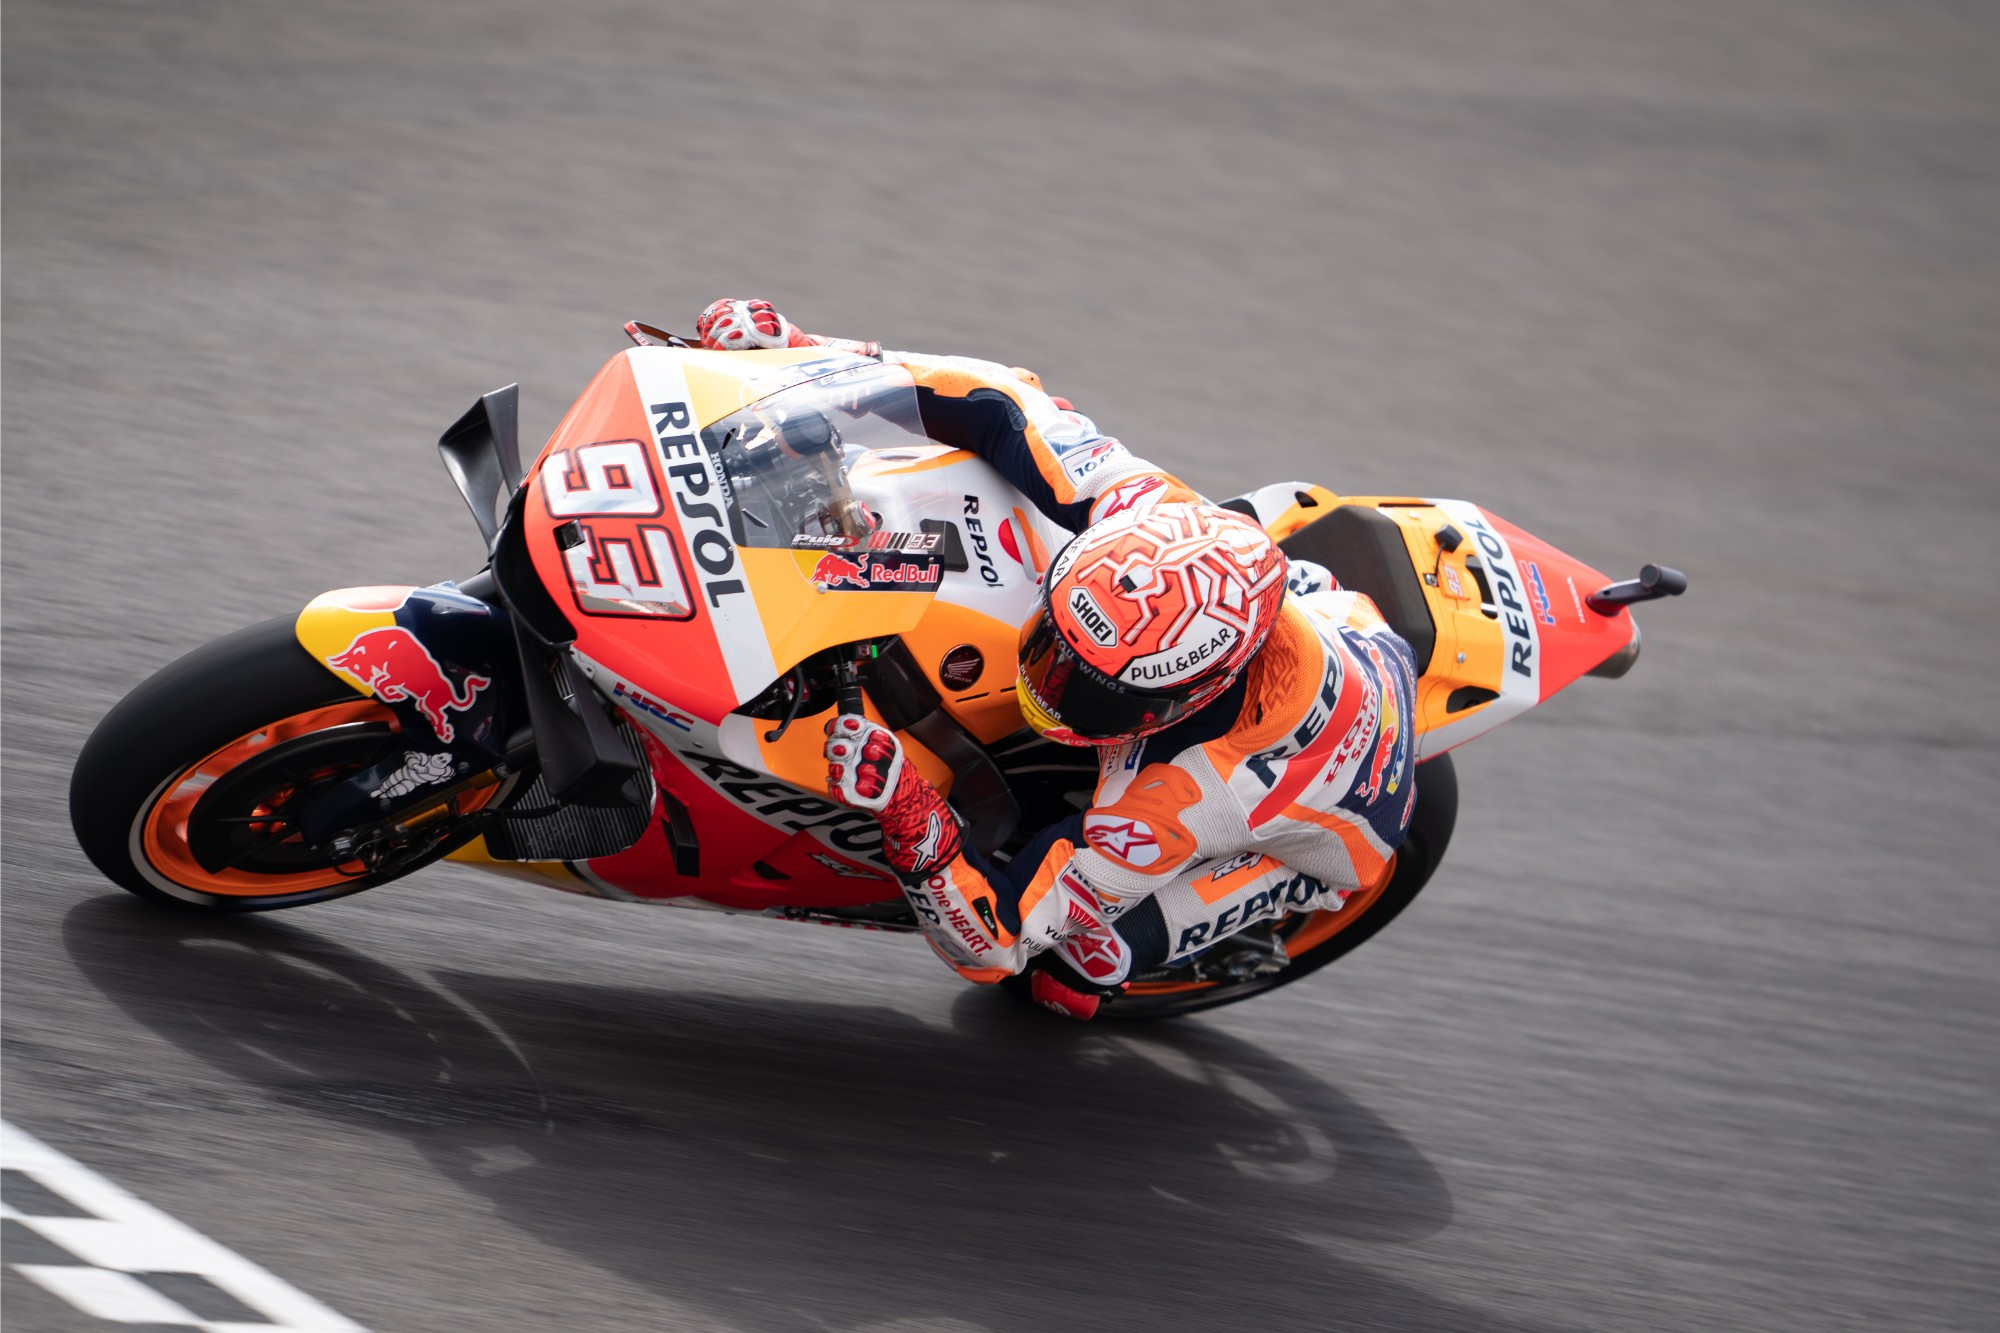 Andrea Dovizioso Race Number 04-2014 Very Small Pair